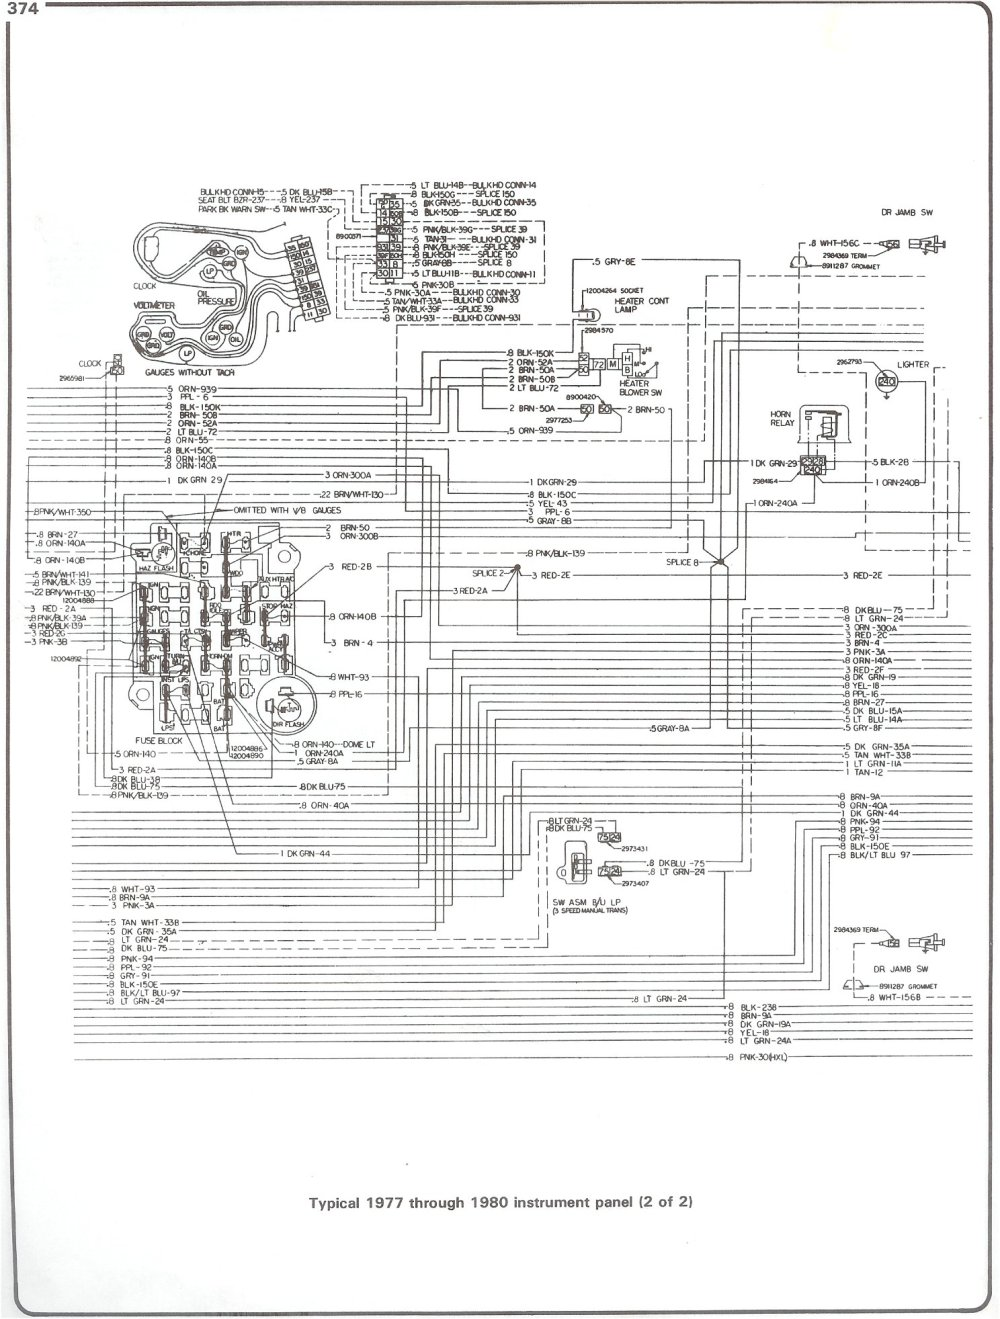 medium resolution of 86 chevy truck wiring wiring diagram show 1986 chevy truck wiring schematic 1986 chevy truck wiring schematics